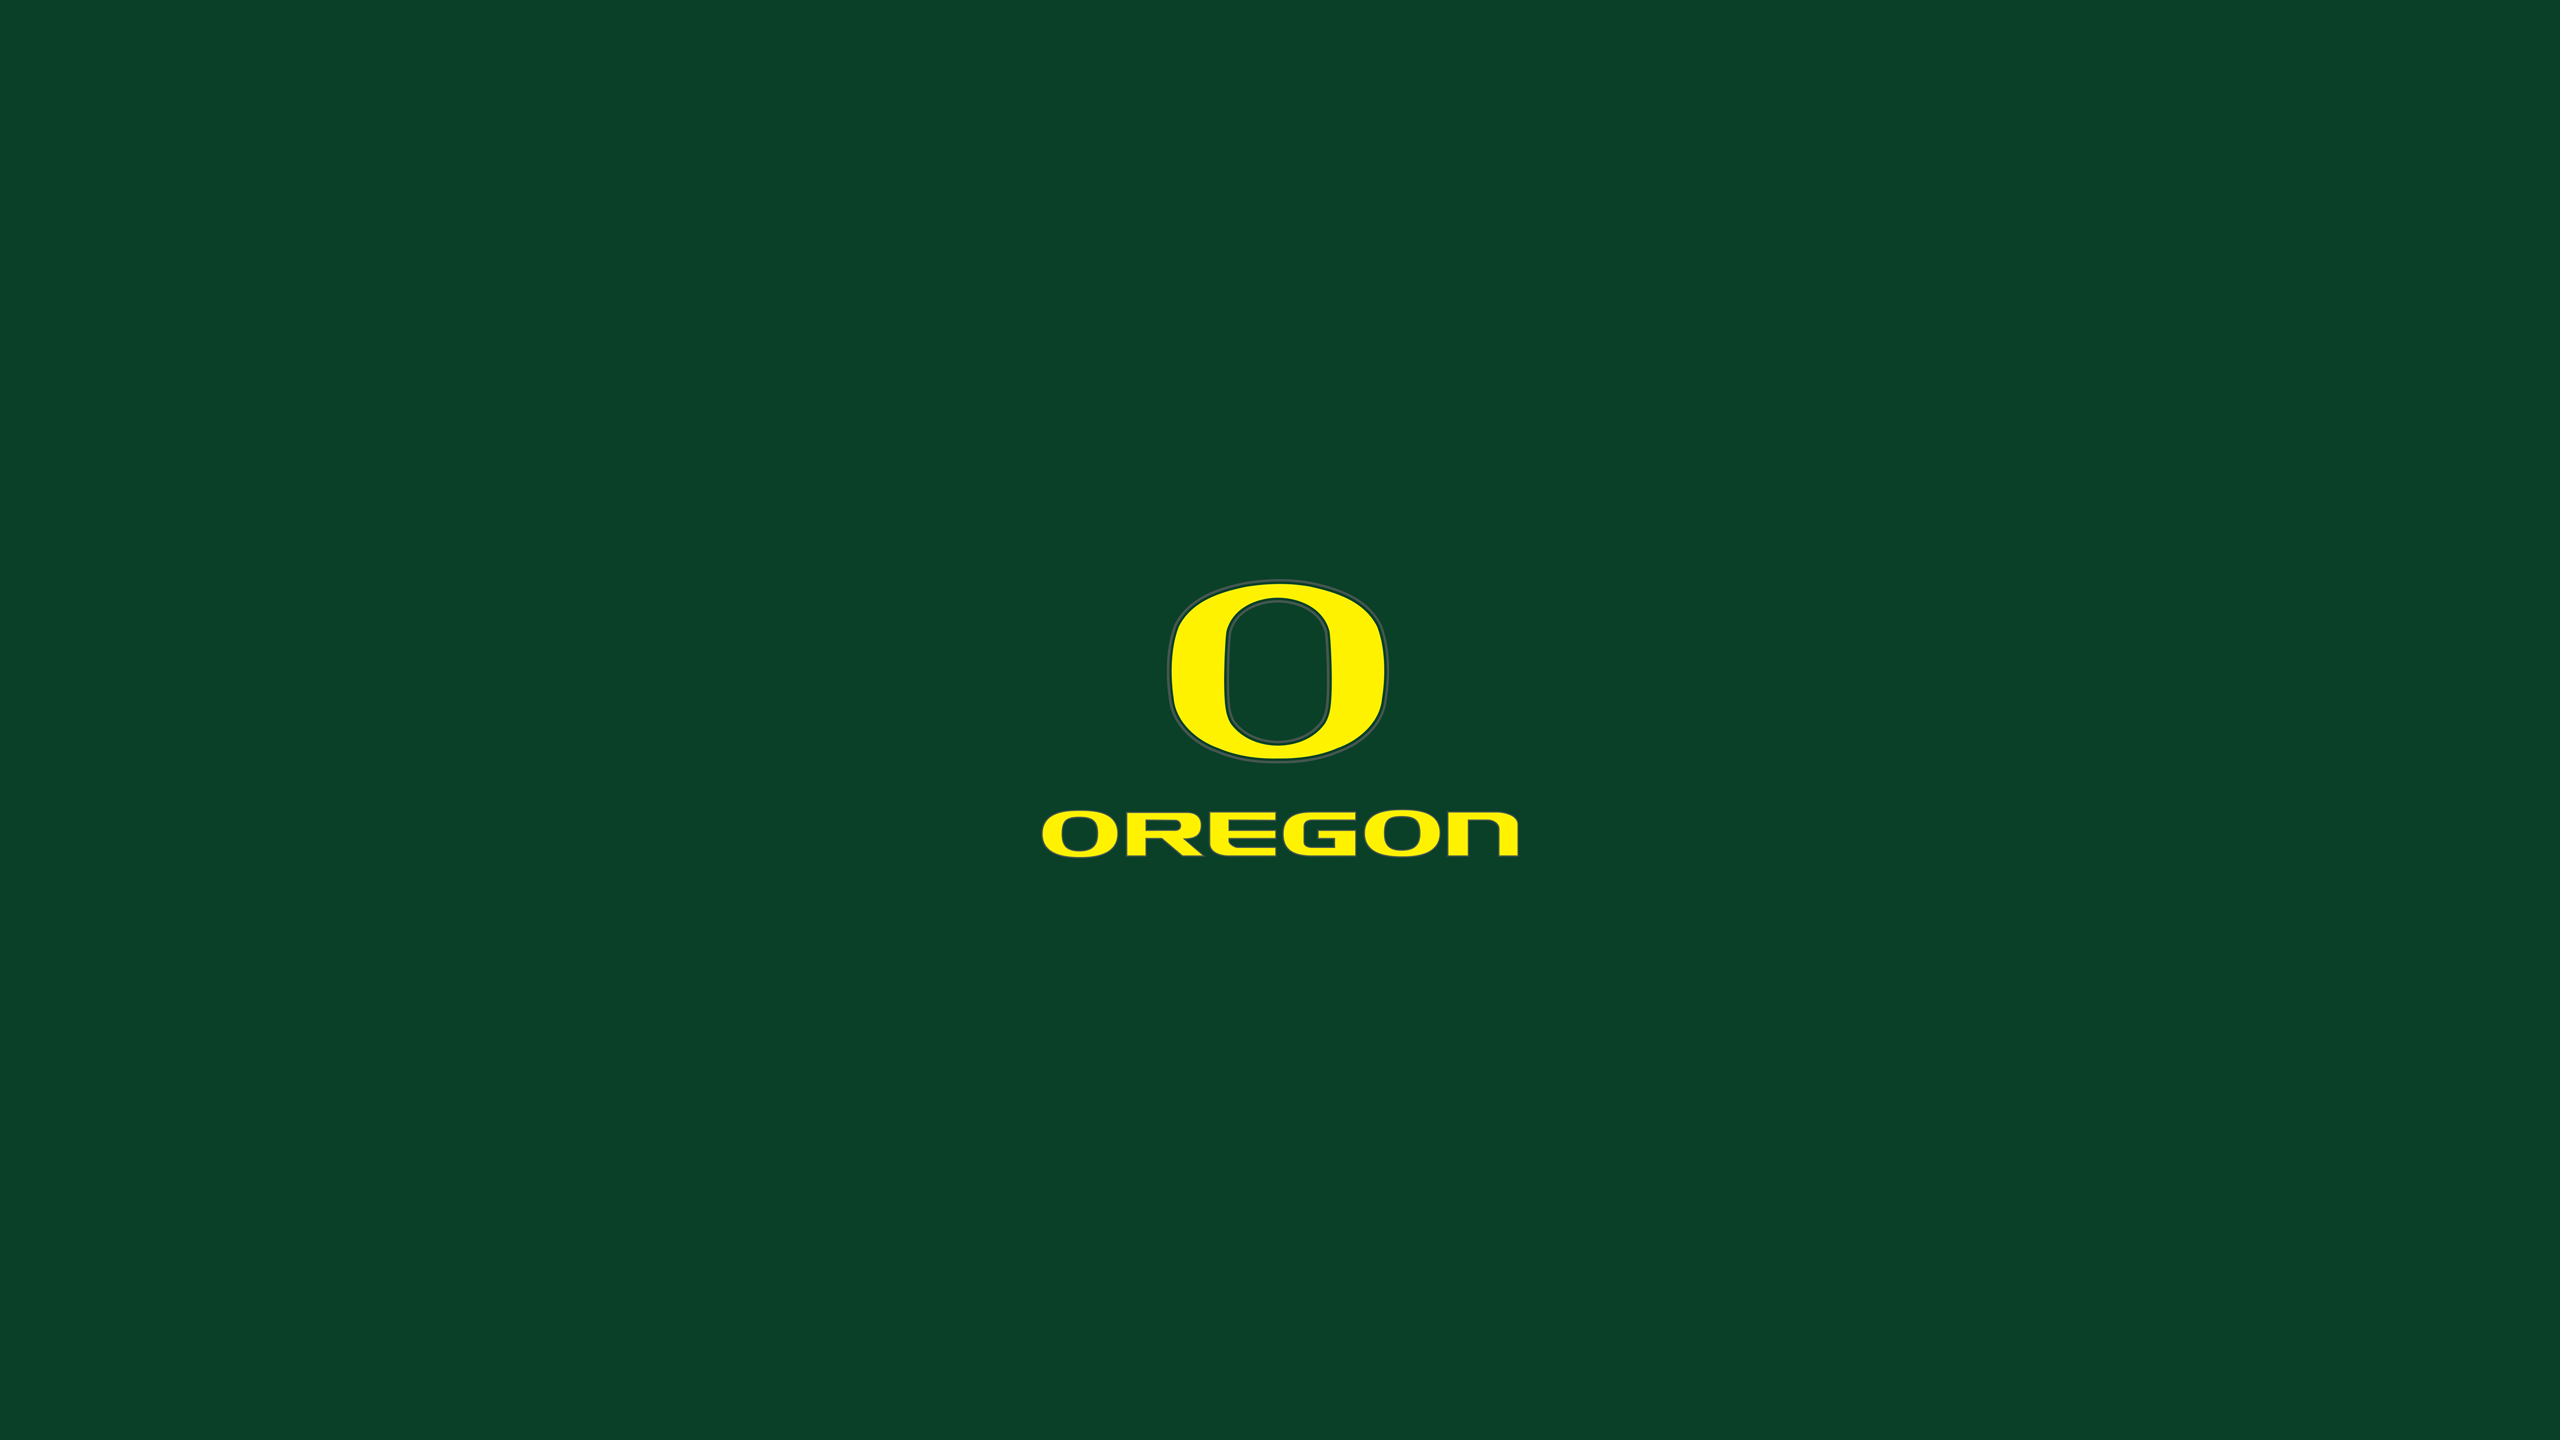 OREGON DUCKS FOOTBALL FREE Wallpapers Background images 2560x1440